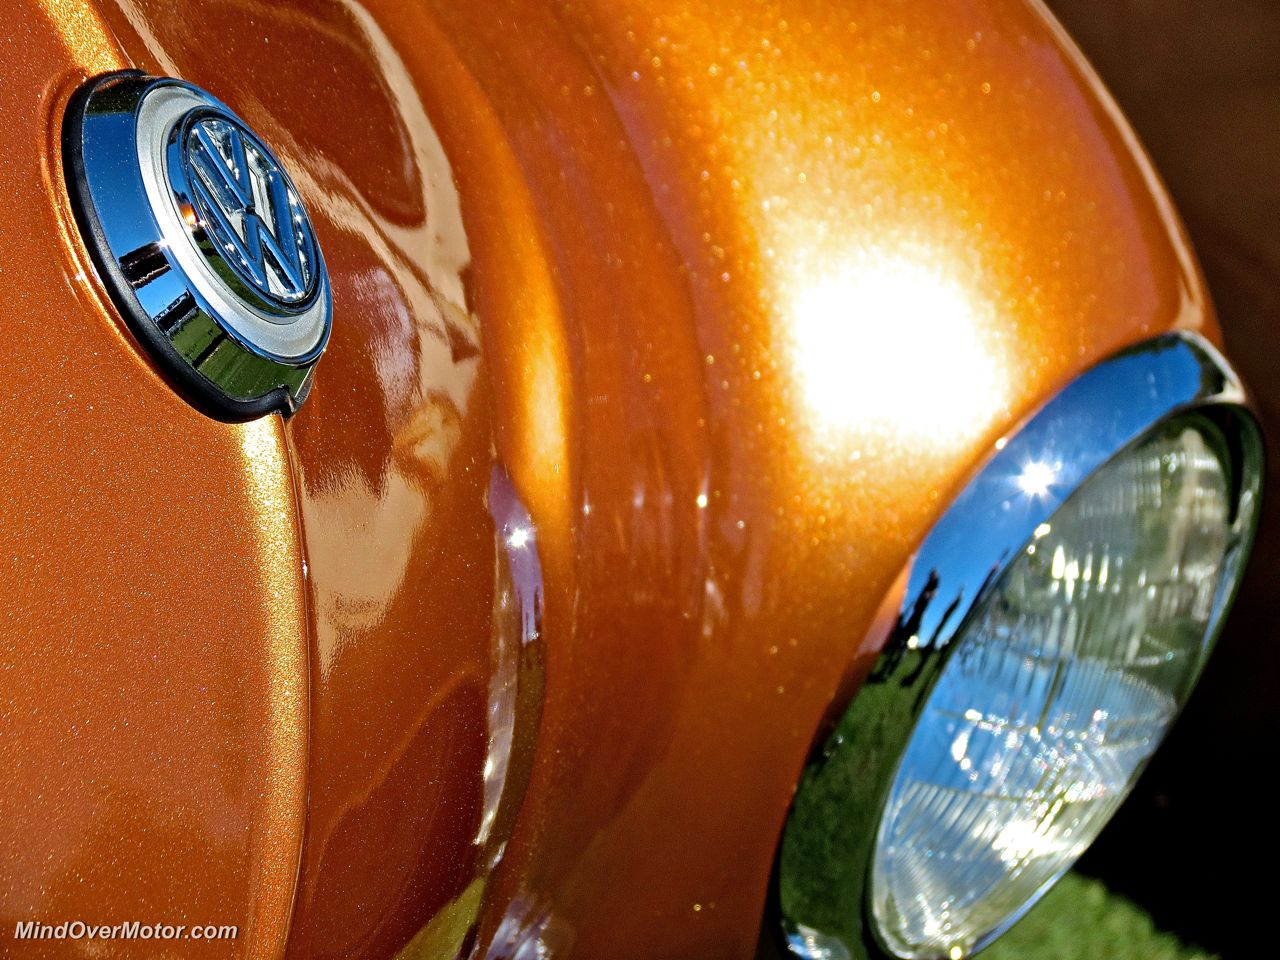 Karmann Ghia VW Badge